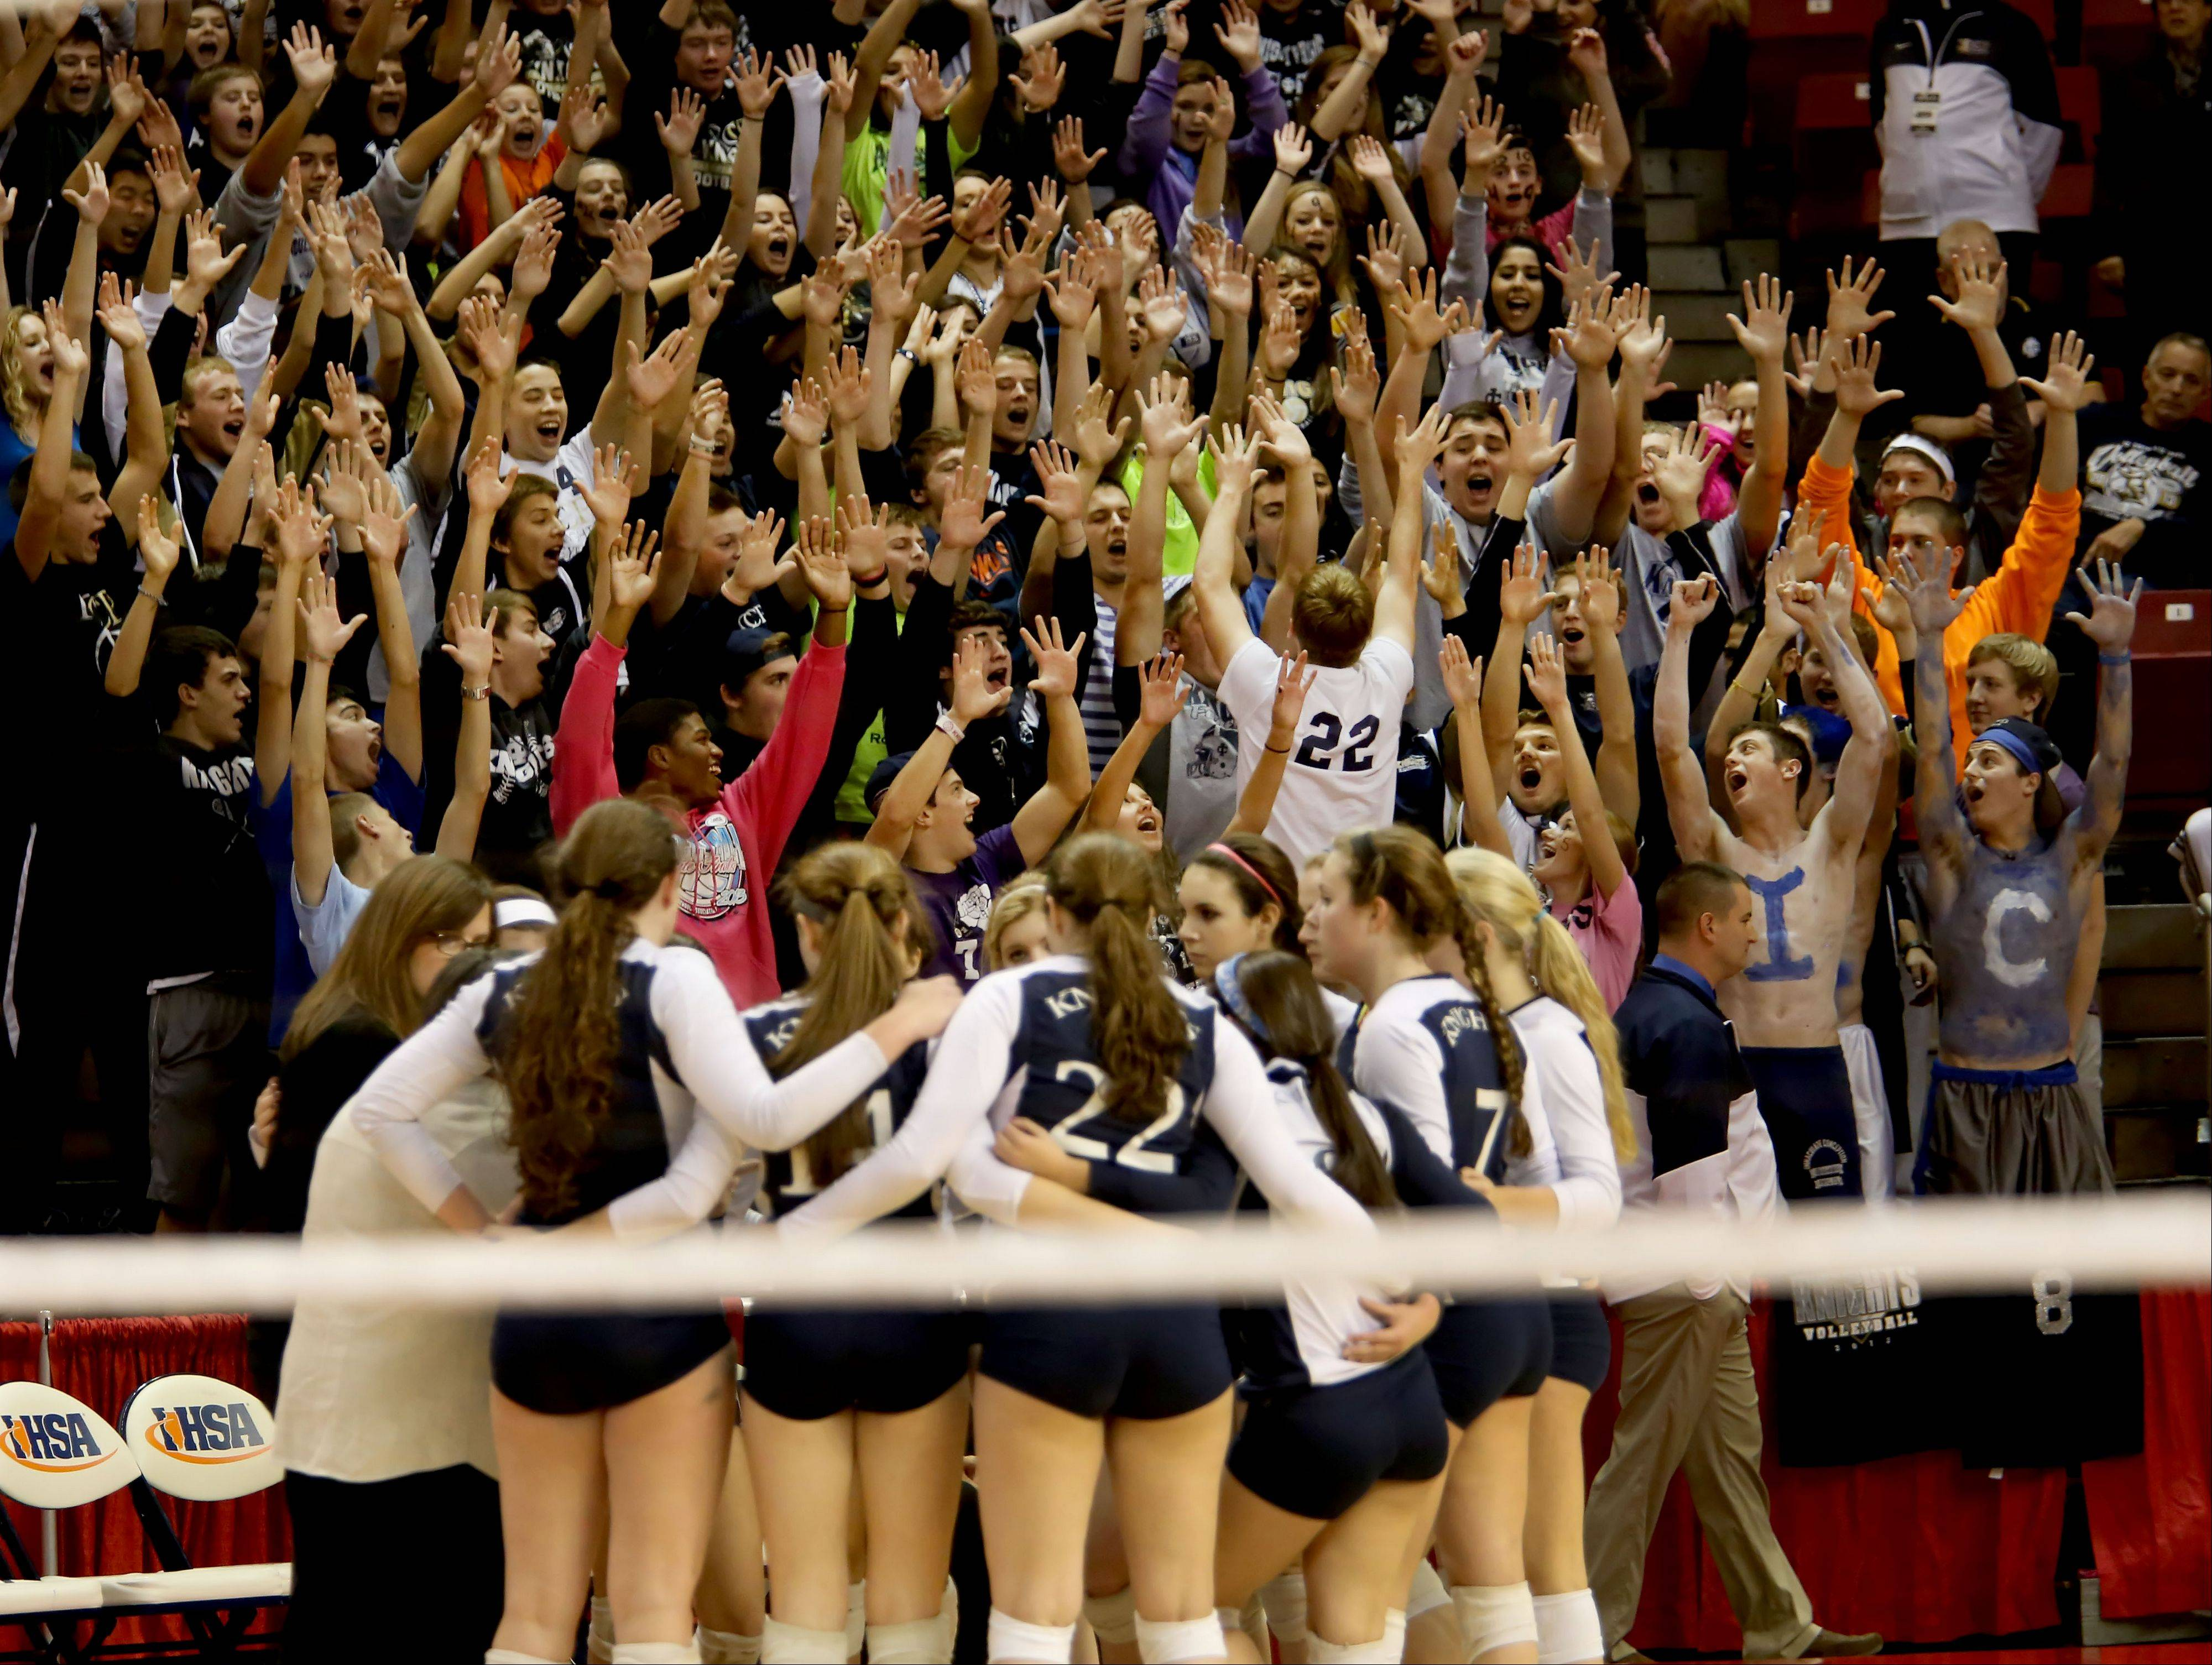 IC Catholic and fans in the Class 2A championship girls volleyball match on Saturday in Normal.